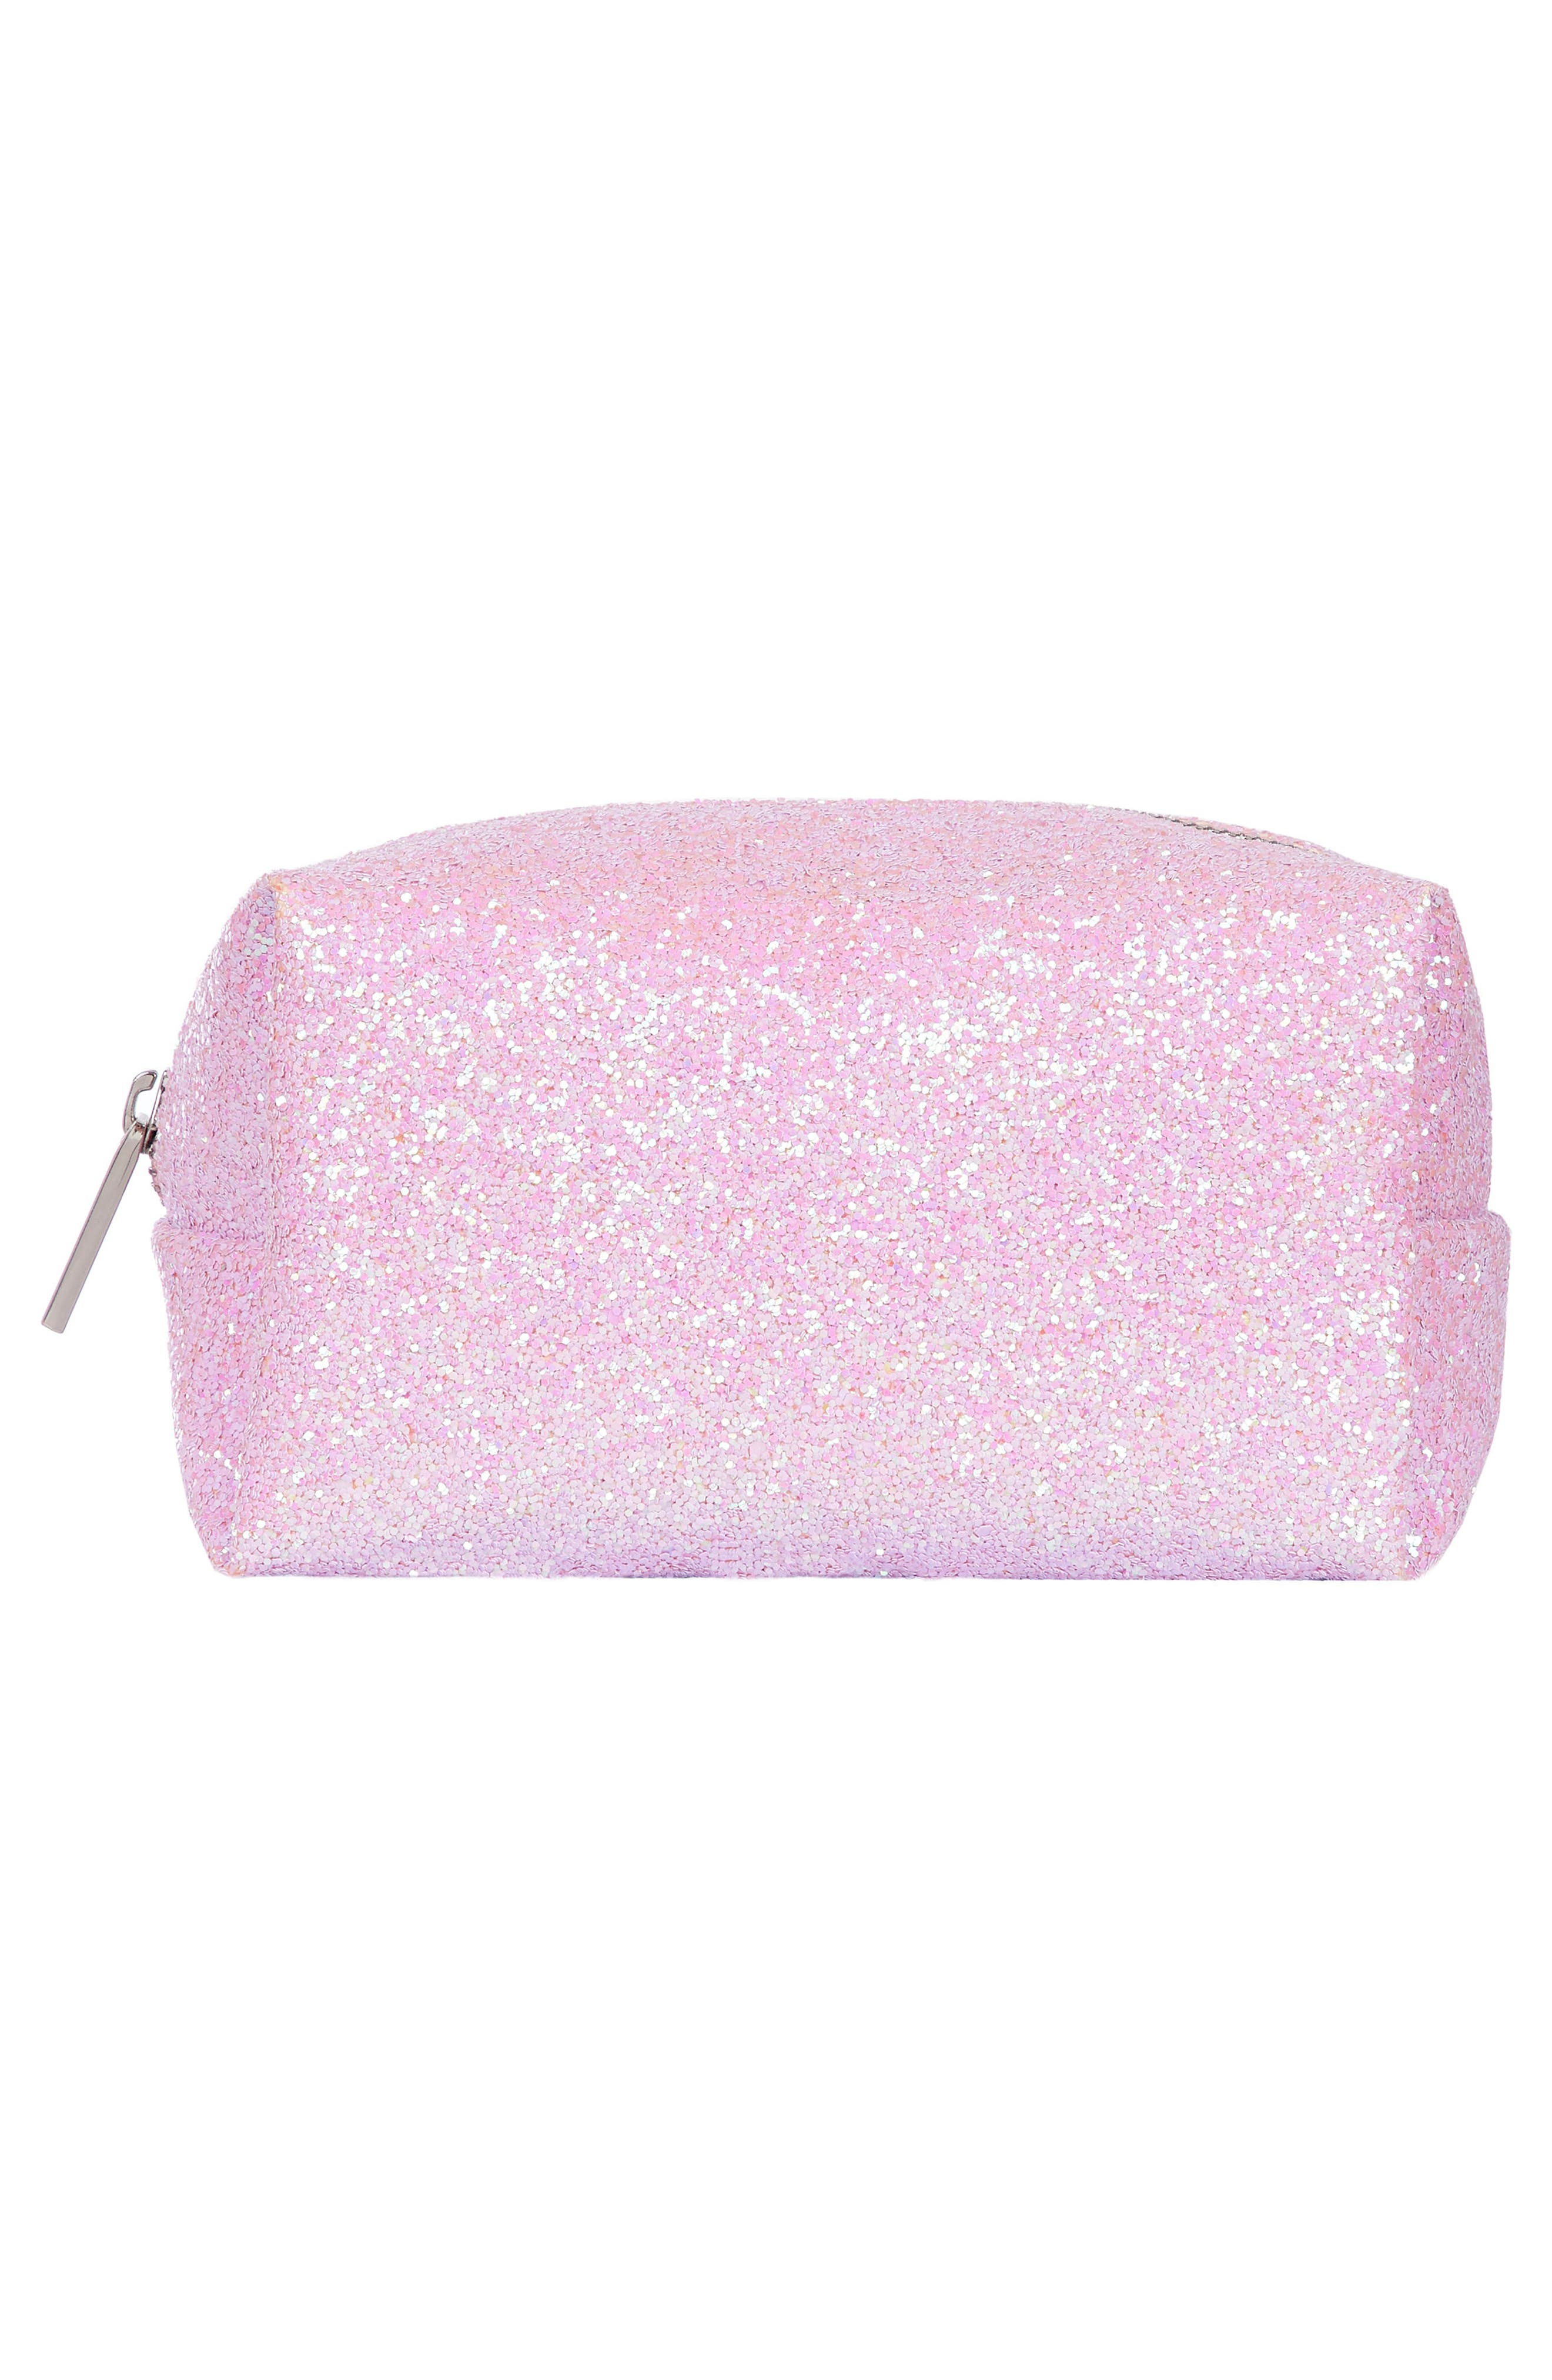 Skinny Dip Pink Glitsy Cosmetics Case,                             Alternate thumbnail 2, color,                             No Color